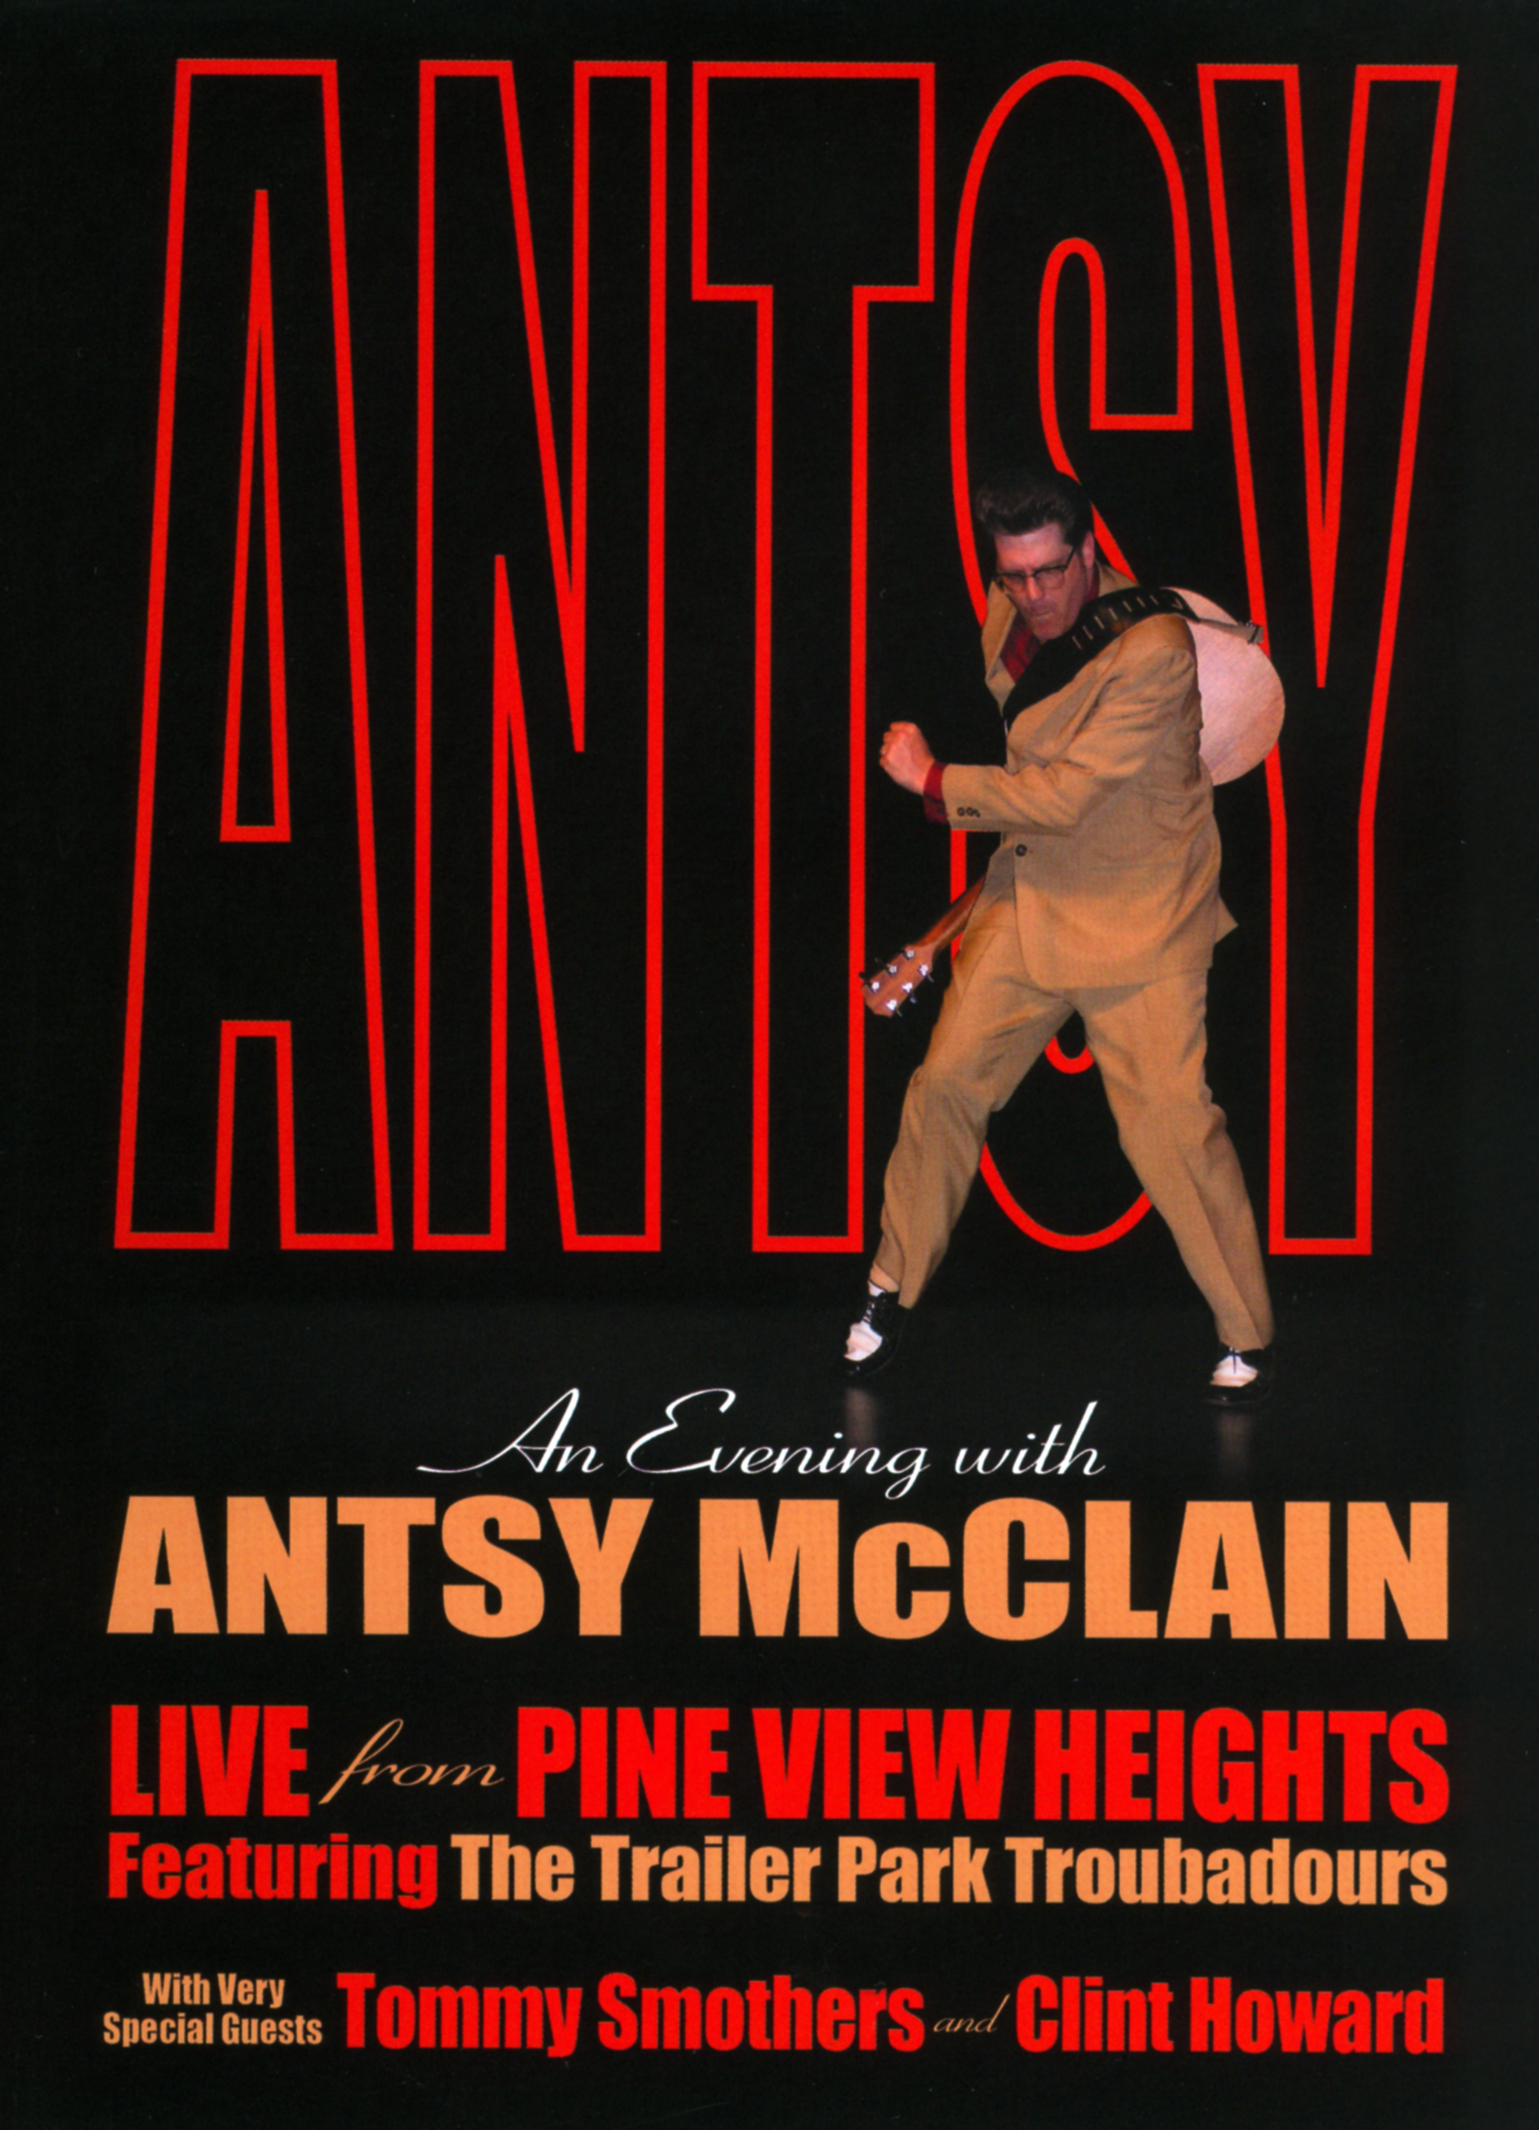 Antsy: An Evening with Antsy McClain